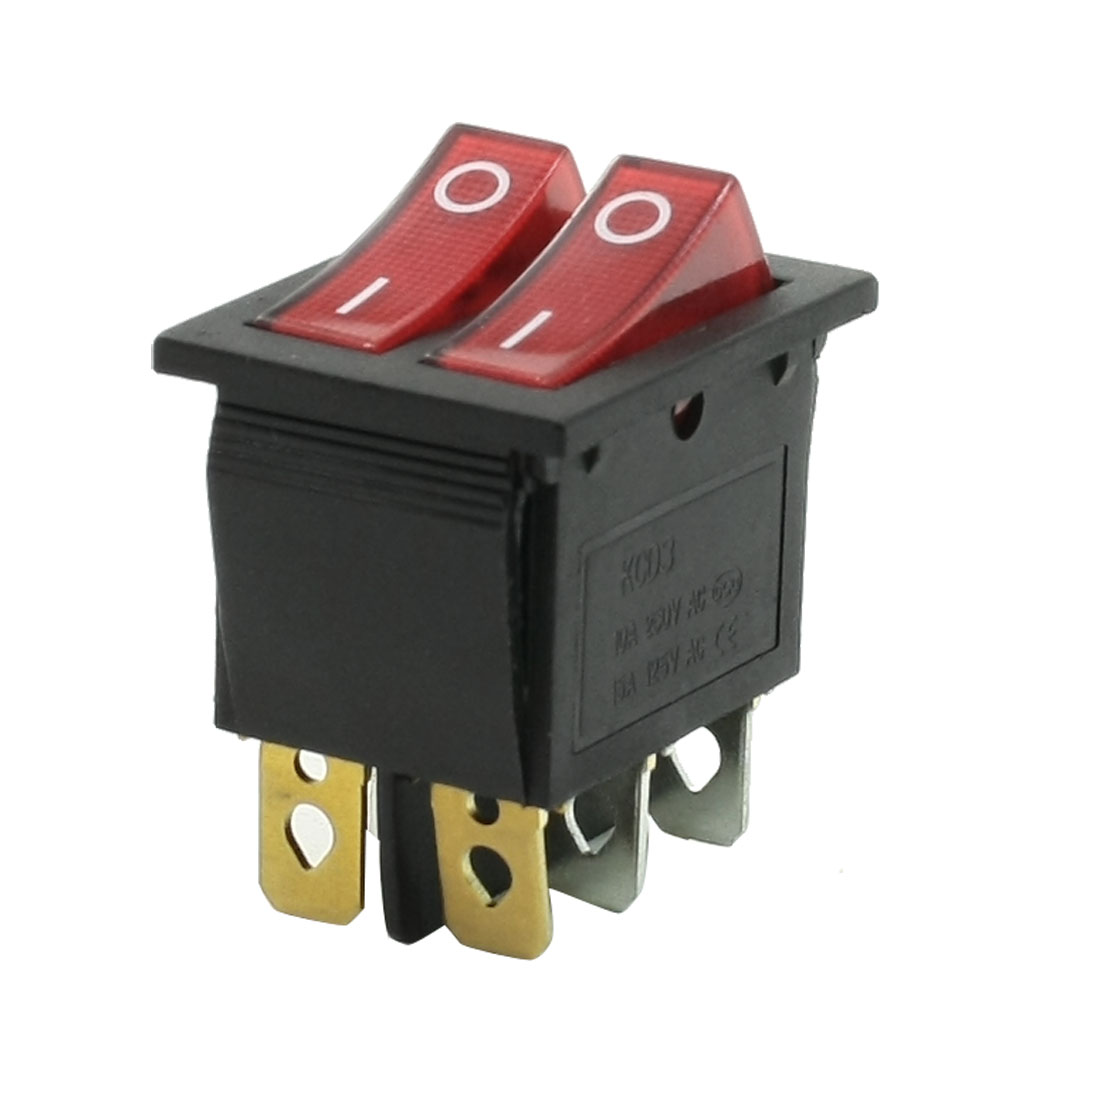 10A 250VAC 15A 125VAC 6 Pin Dual SPST On-off Red Light Rocker Switch